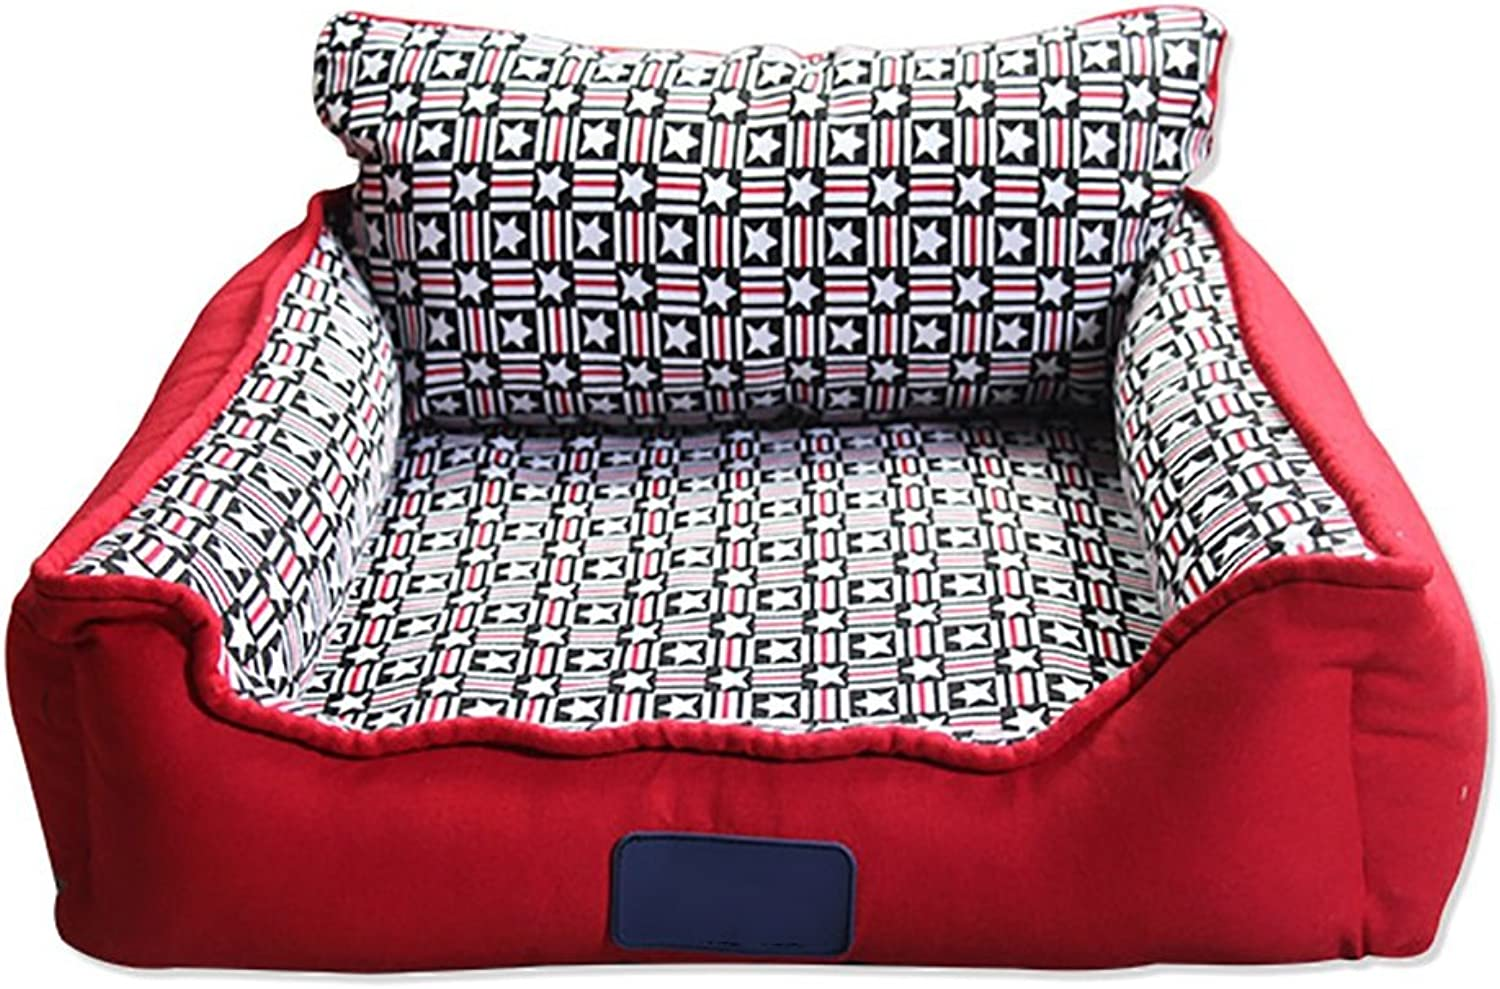 JH& Pet Kennel Cat Nest Removable And Washable Four Seasons ApplySmall Dog Bed Mat Dog Room,Red,63  63cm ++